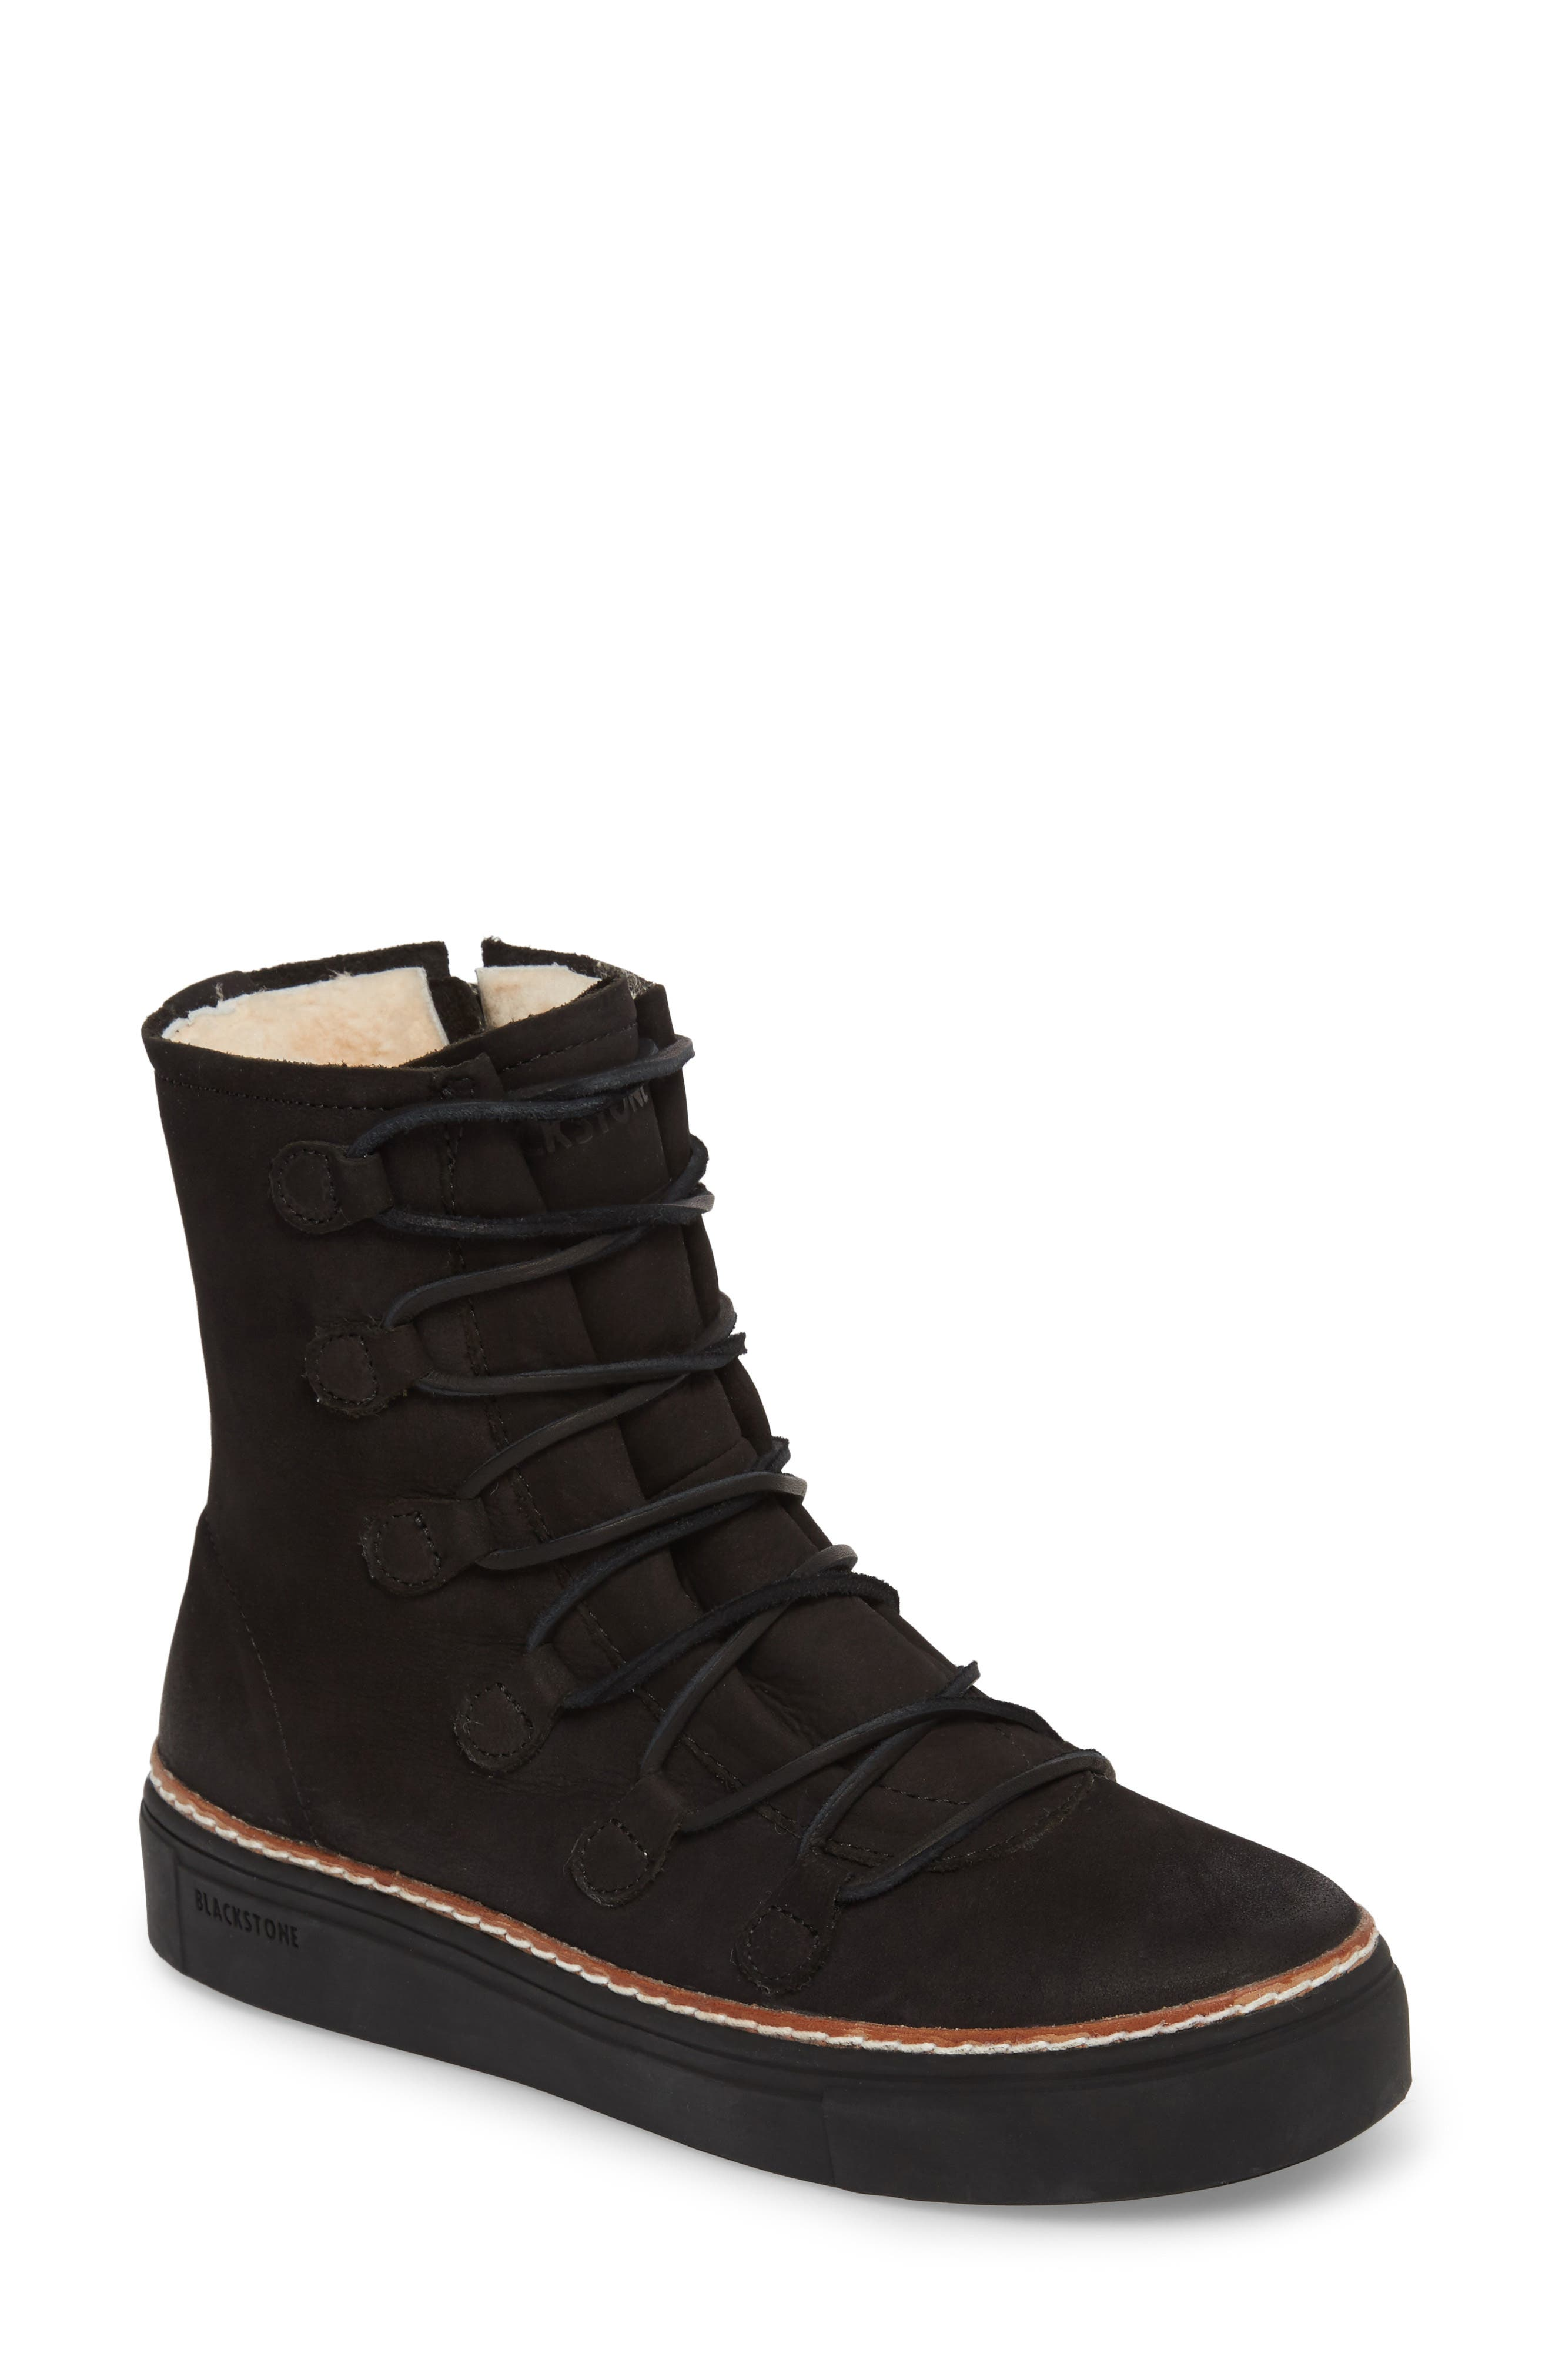 BLACKSTONE,                             OL26 Genuine Shearling Lined Lace-Up Bootie,                             Main thumbnail 1, color,                             BLACK NUBUCK LEATHER